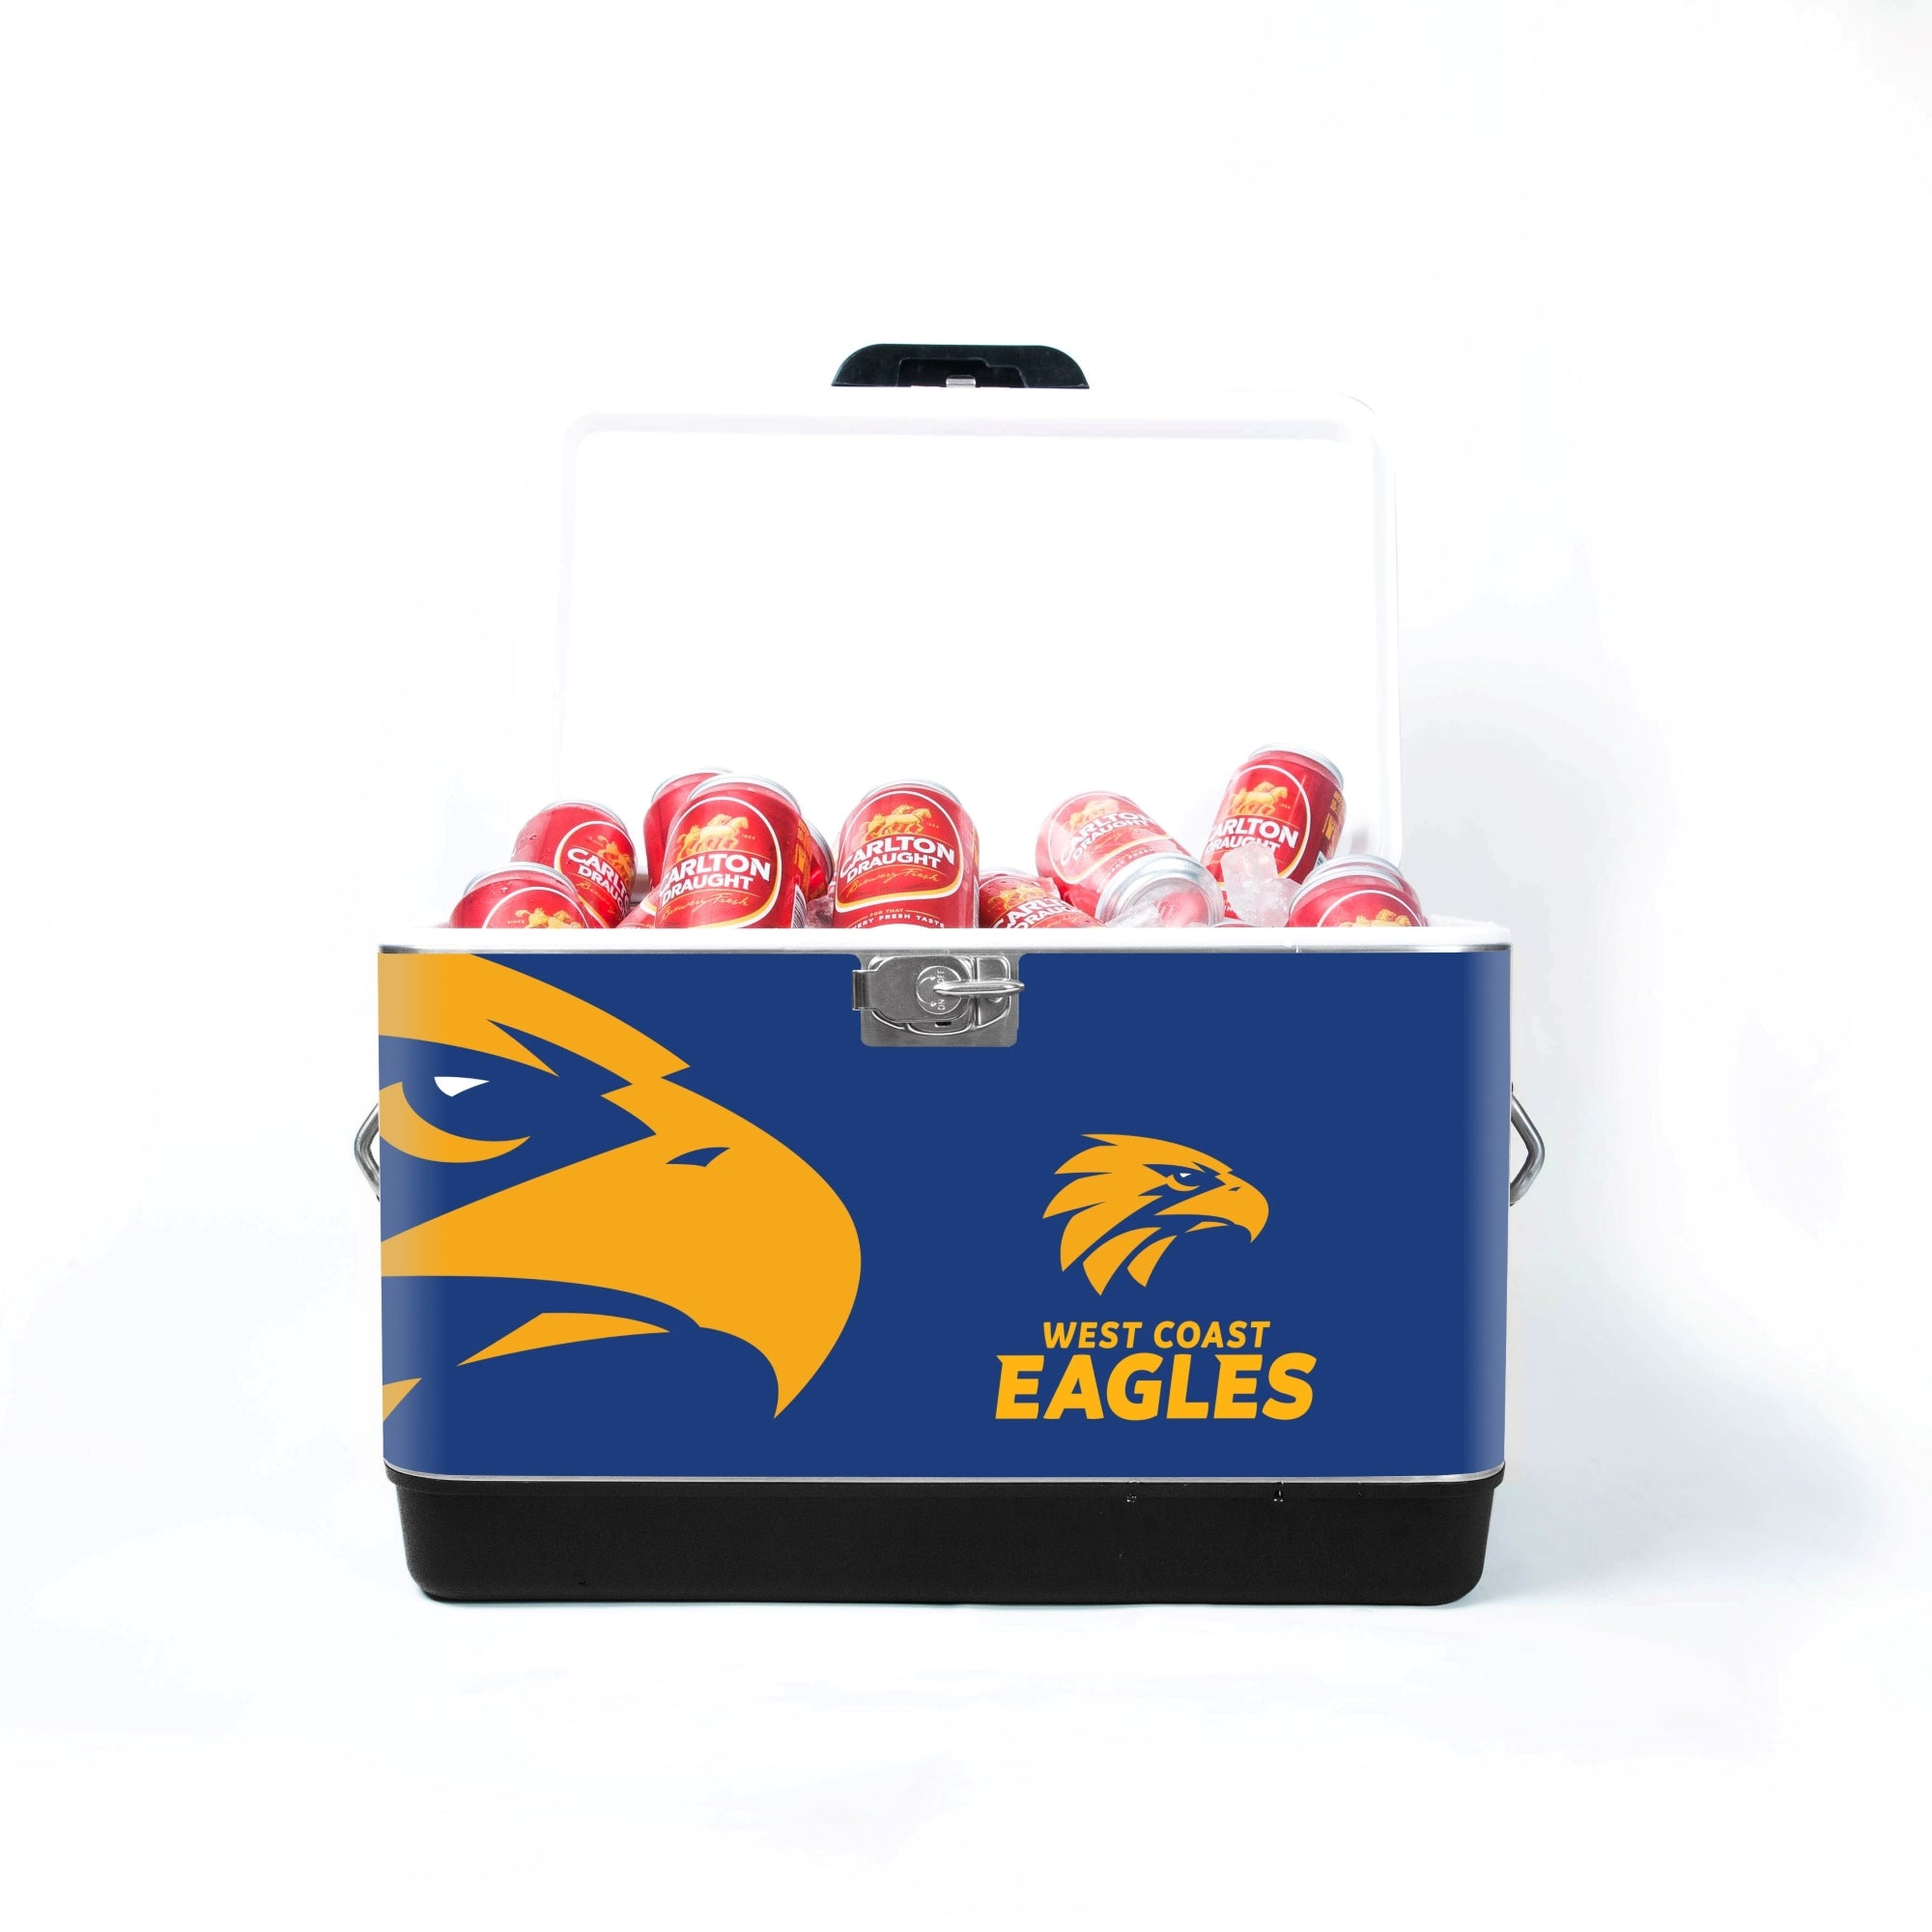 Carlton Draught x West Coast Eagles AFL Cooler